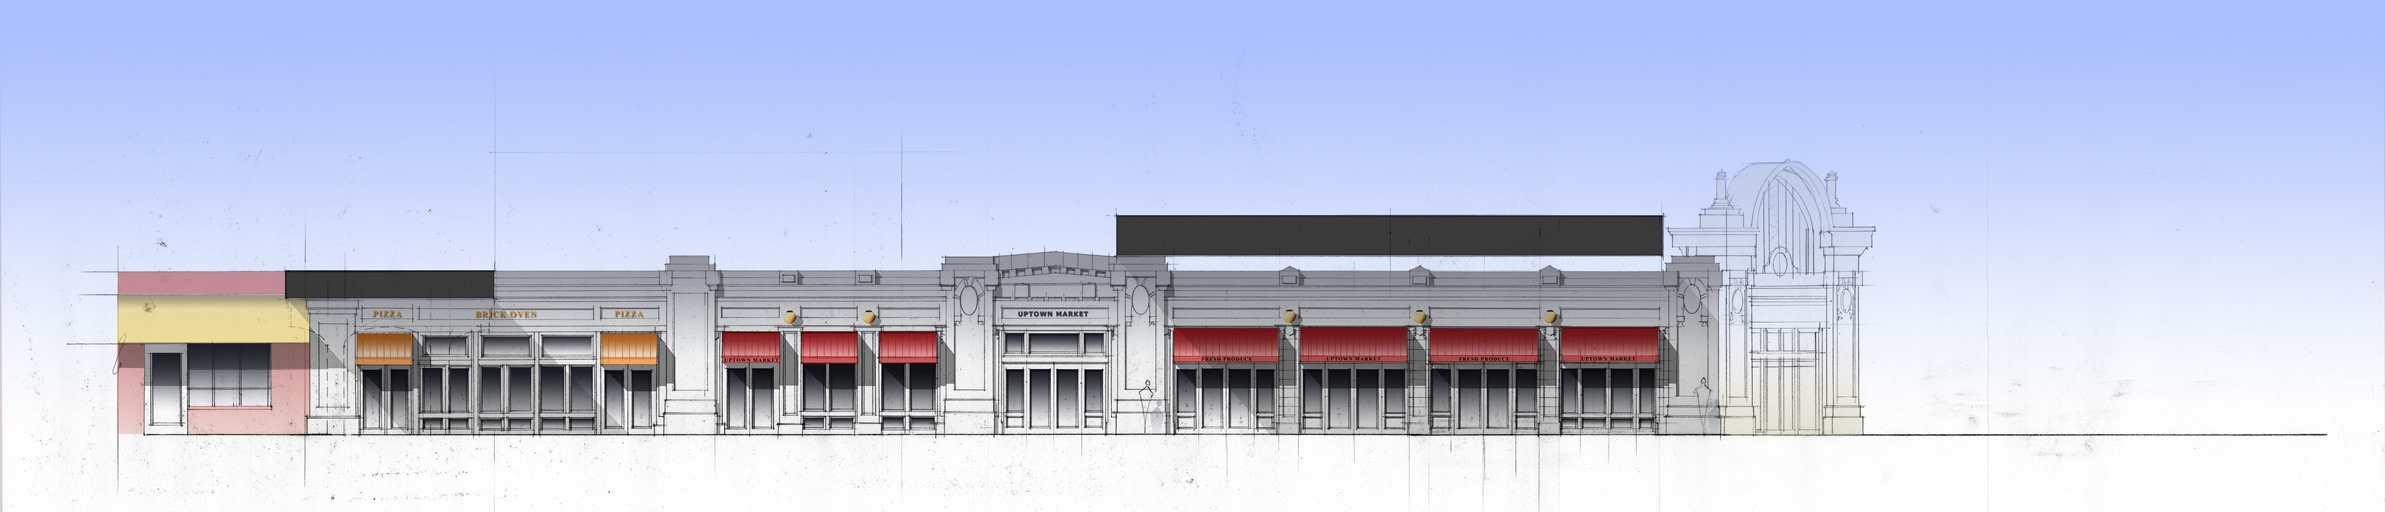 Uptown Market_Wilson Elevation SM